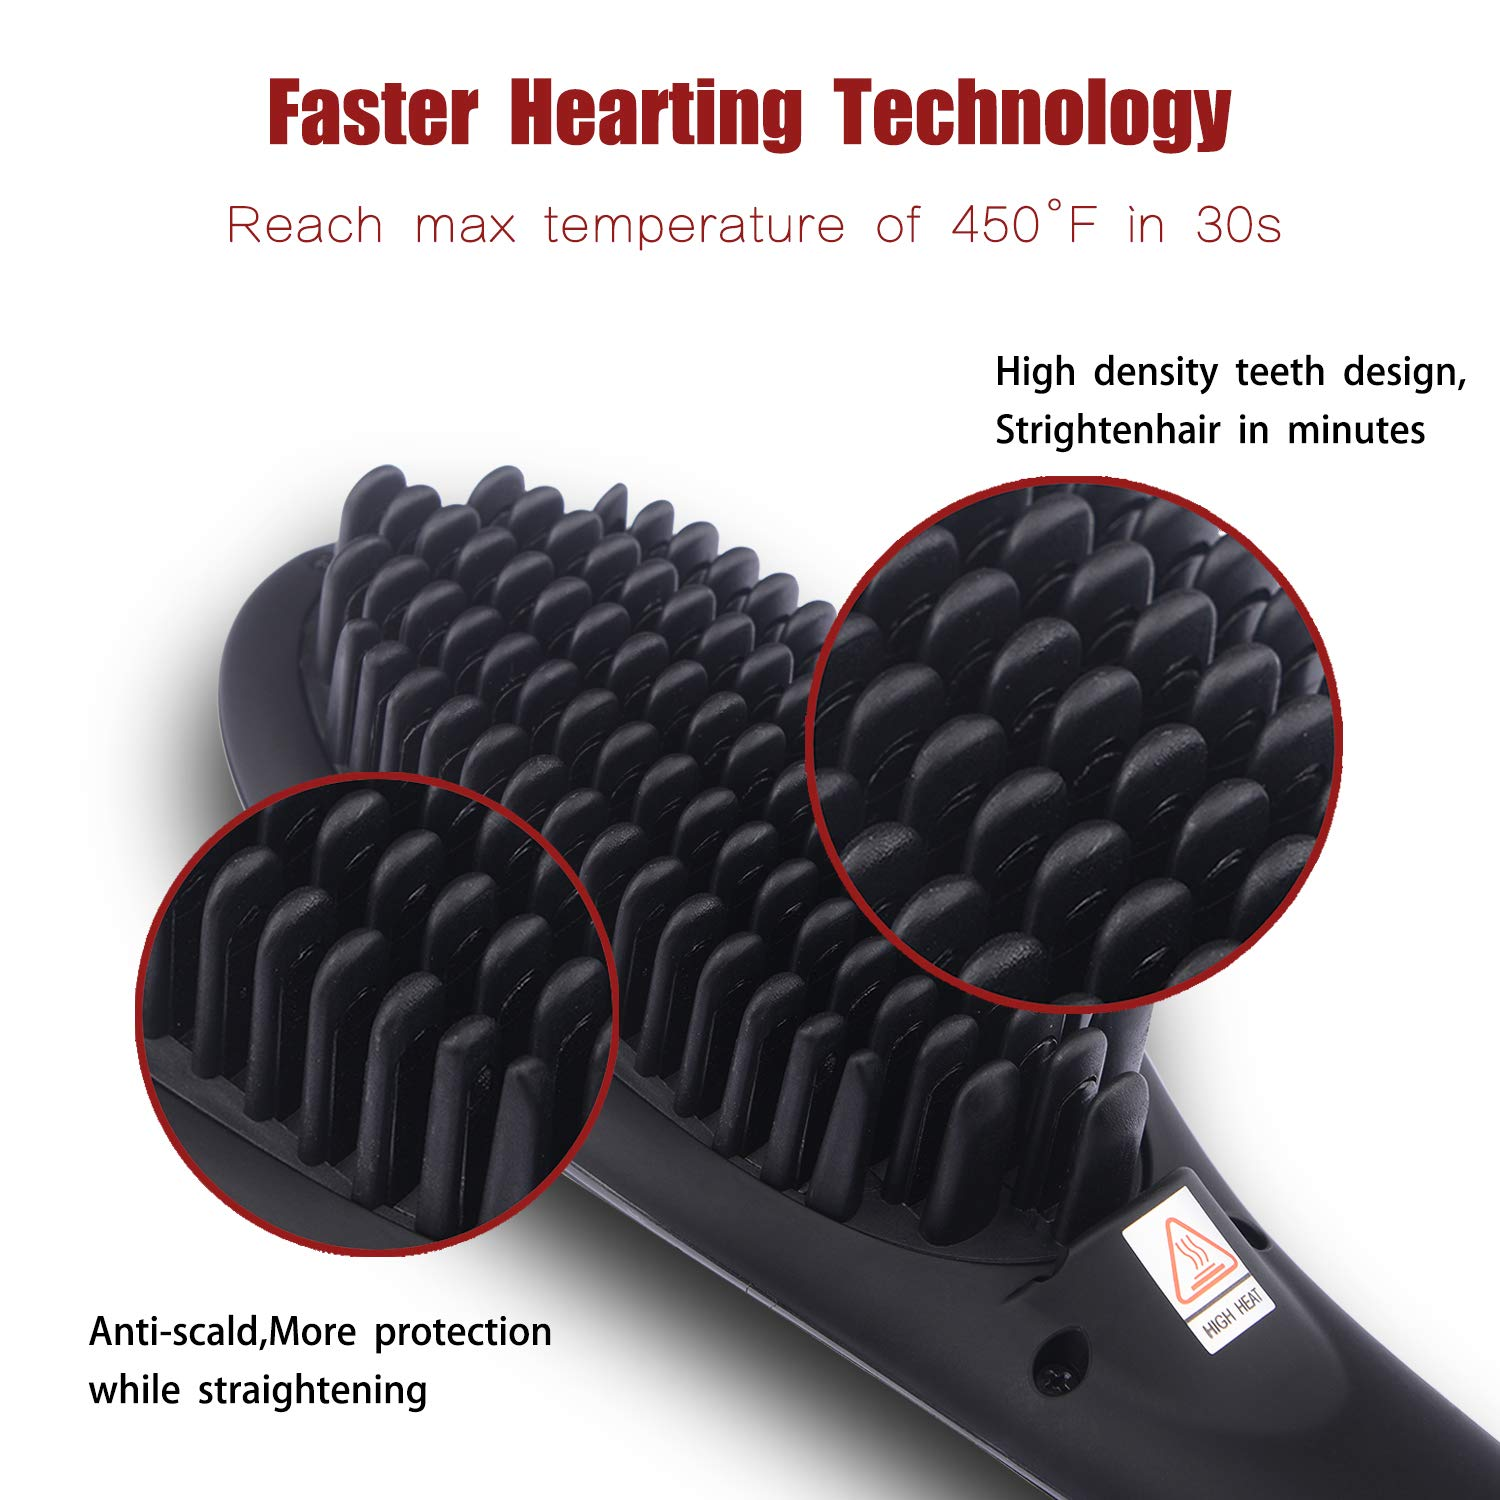 Ceramic Hair Straightening Brush with Anti-Scald, BESTBOMG Ionic Hair Straightener Brush Iron for Silky Frizz Free Hair Auto Temperature Lock and Auto-off Function for All Hair Types